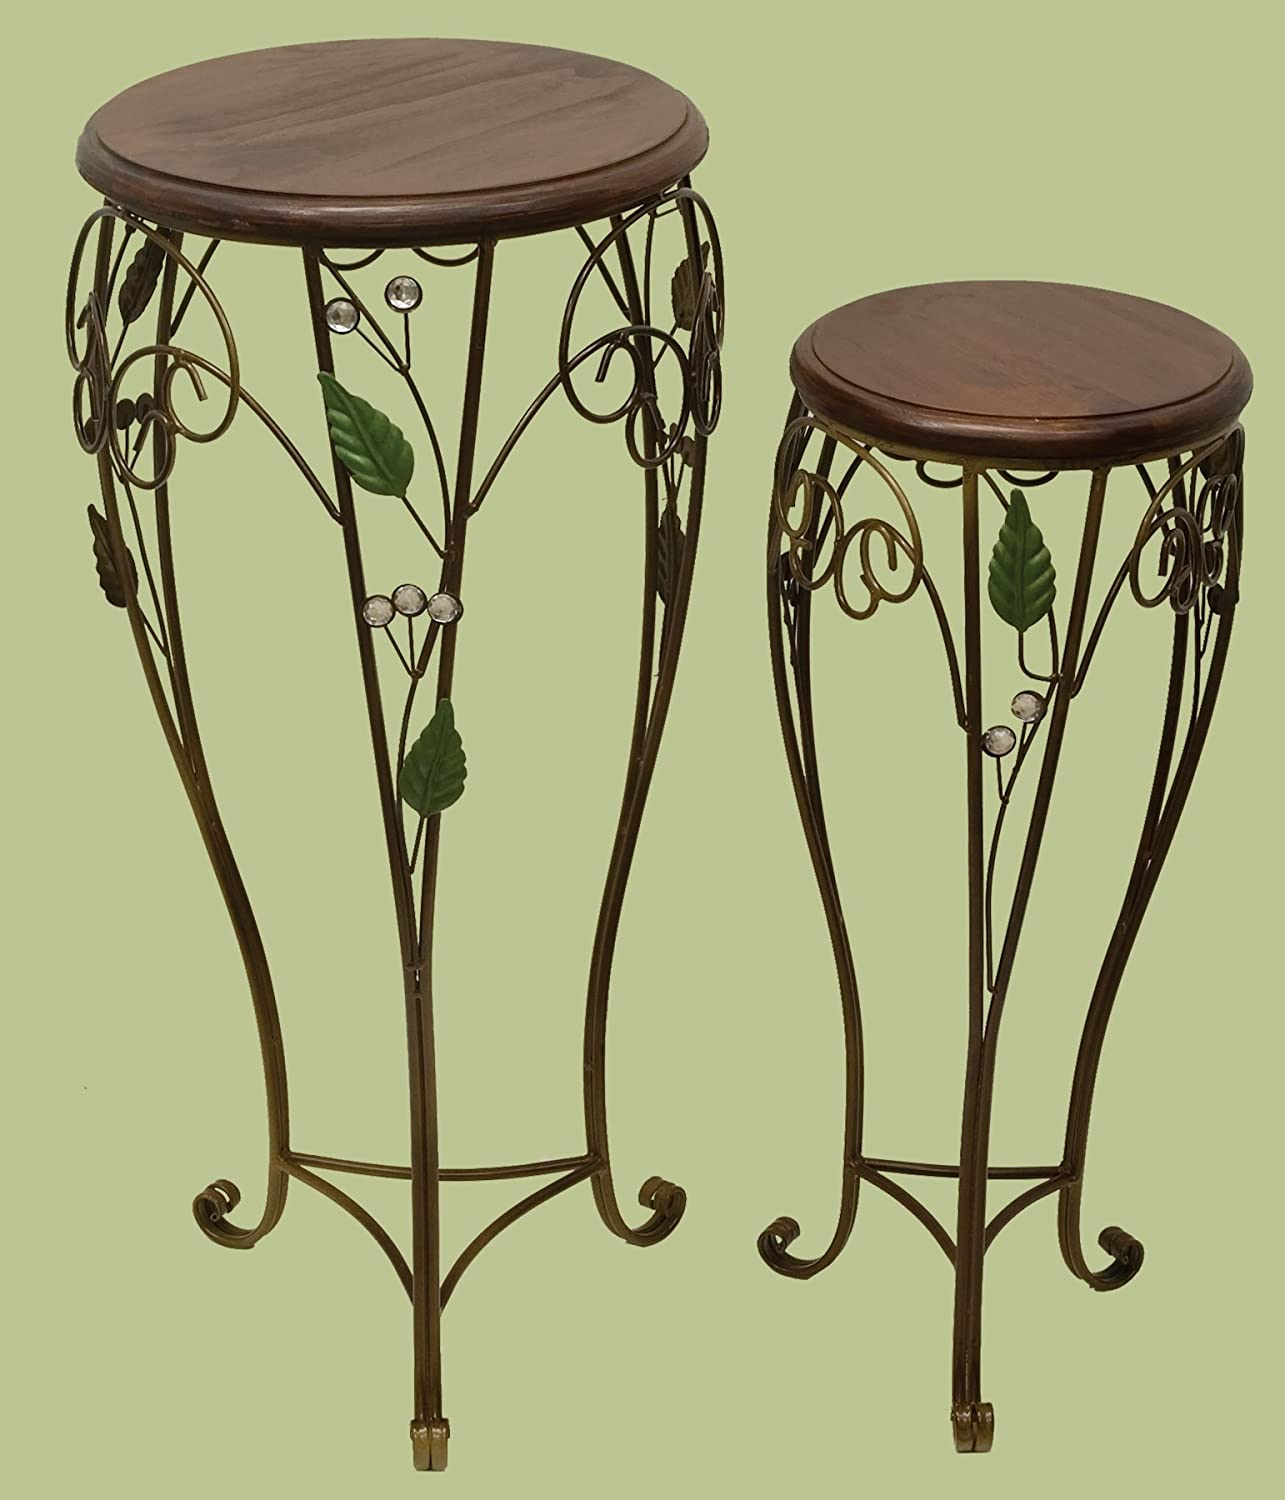 E64012 Metal Plant Stand Set of 2 with Wooden Top